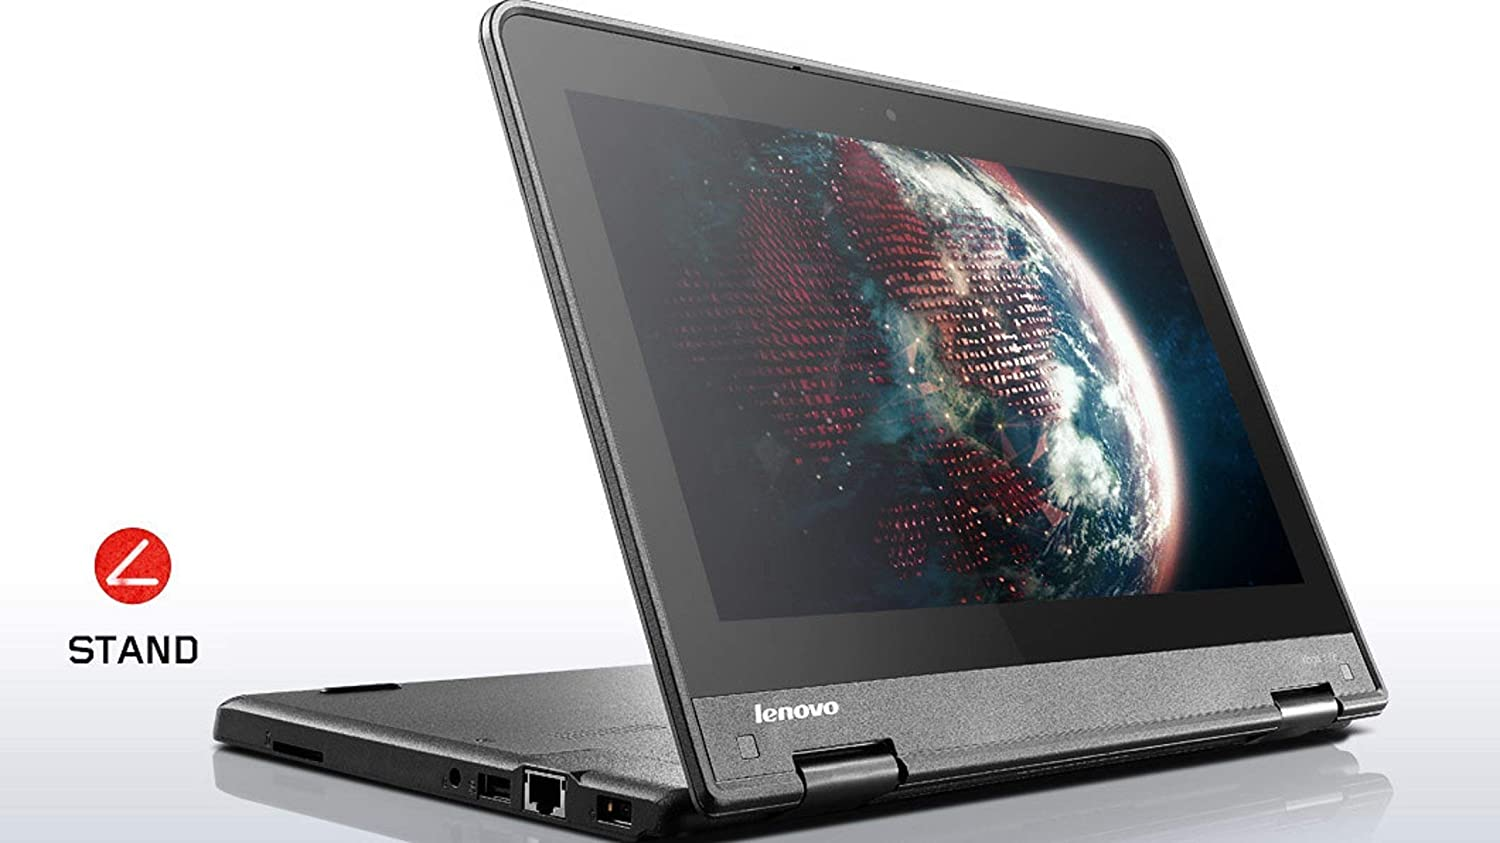 "Lenovo ThinkPad Yoga 11e Chromebook 11.6"" Tablet 2-in-1 Convertible PC (Renewed)"